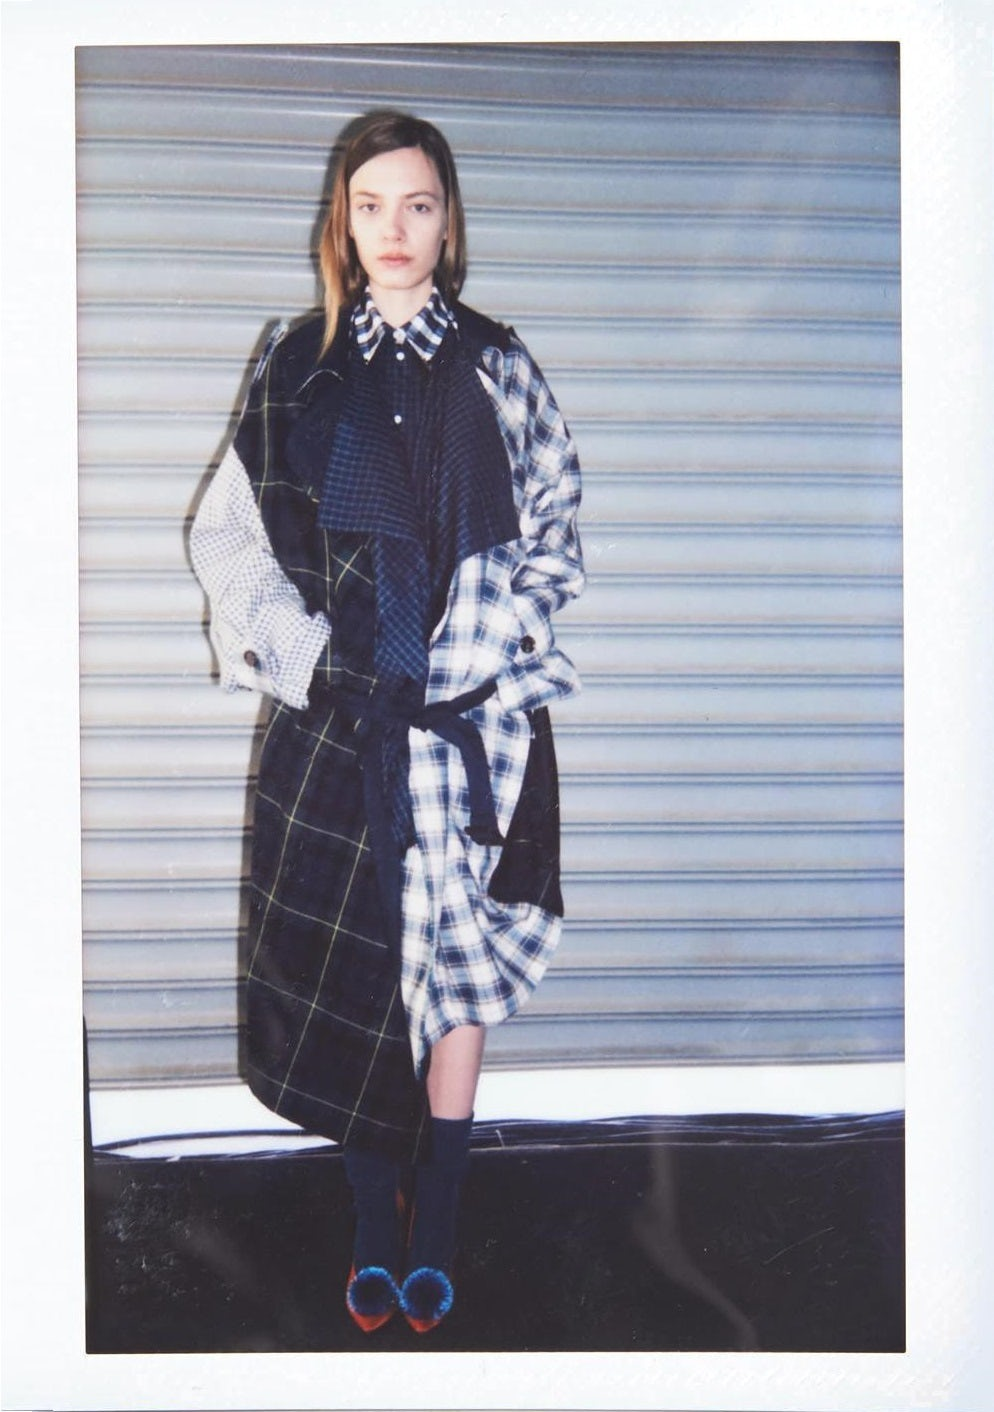 A look from Pushbutton's new collection | Source: Courtesy